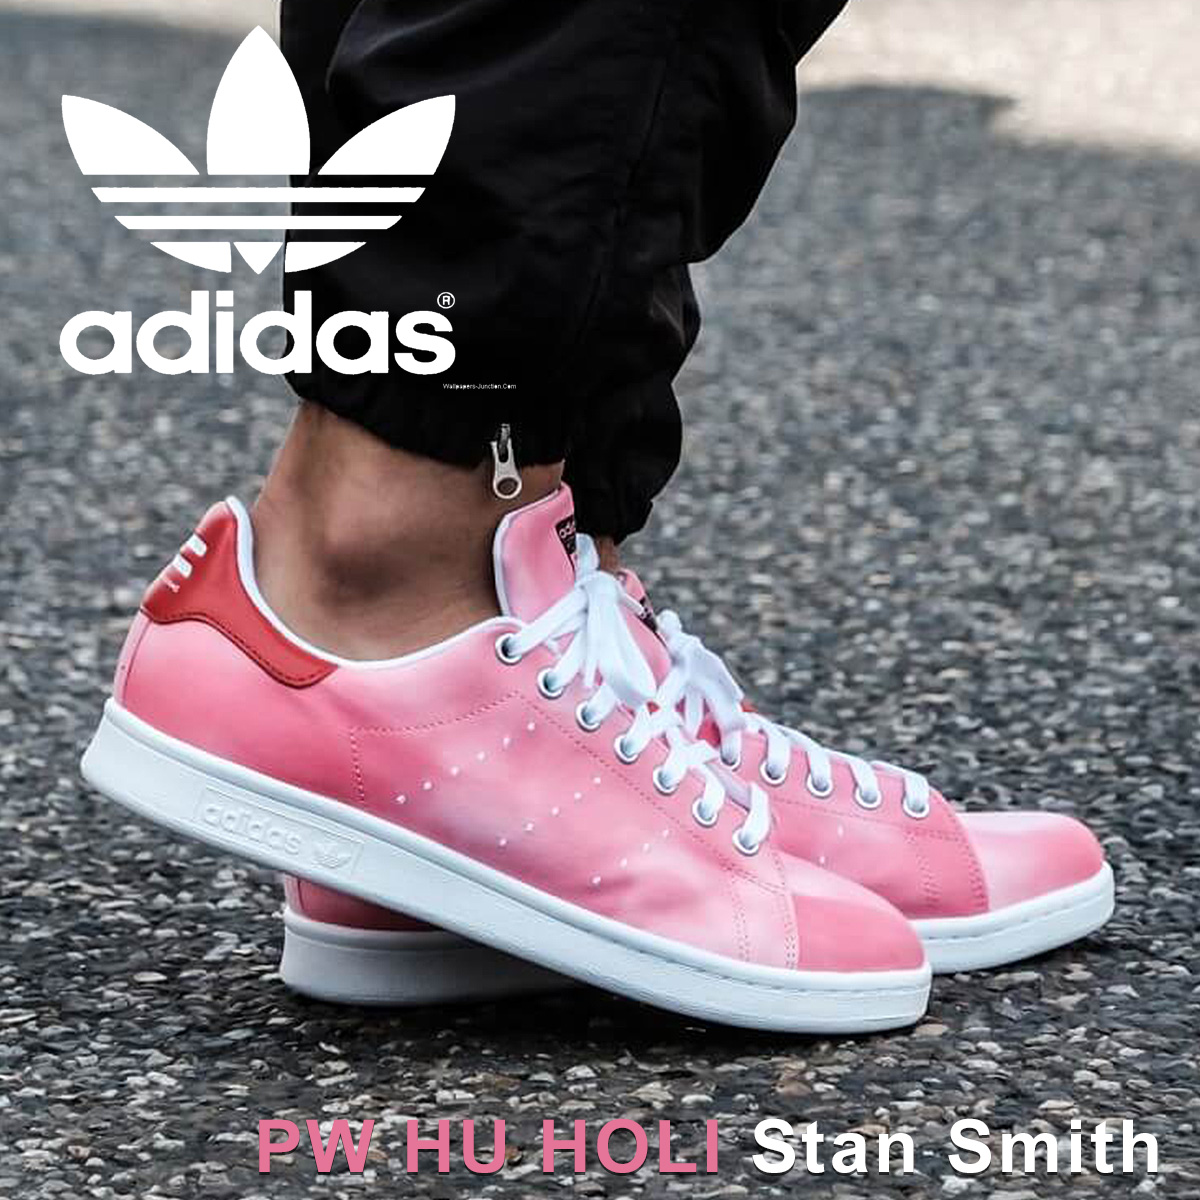 newest 1e3ba 6fa72 adidas Originals PW HU HOLI STAN SMITH Adidas Stan Smith sneakers Farrell  Williams men collaboration AC7044 red originals [3/20 Shinnyu load]